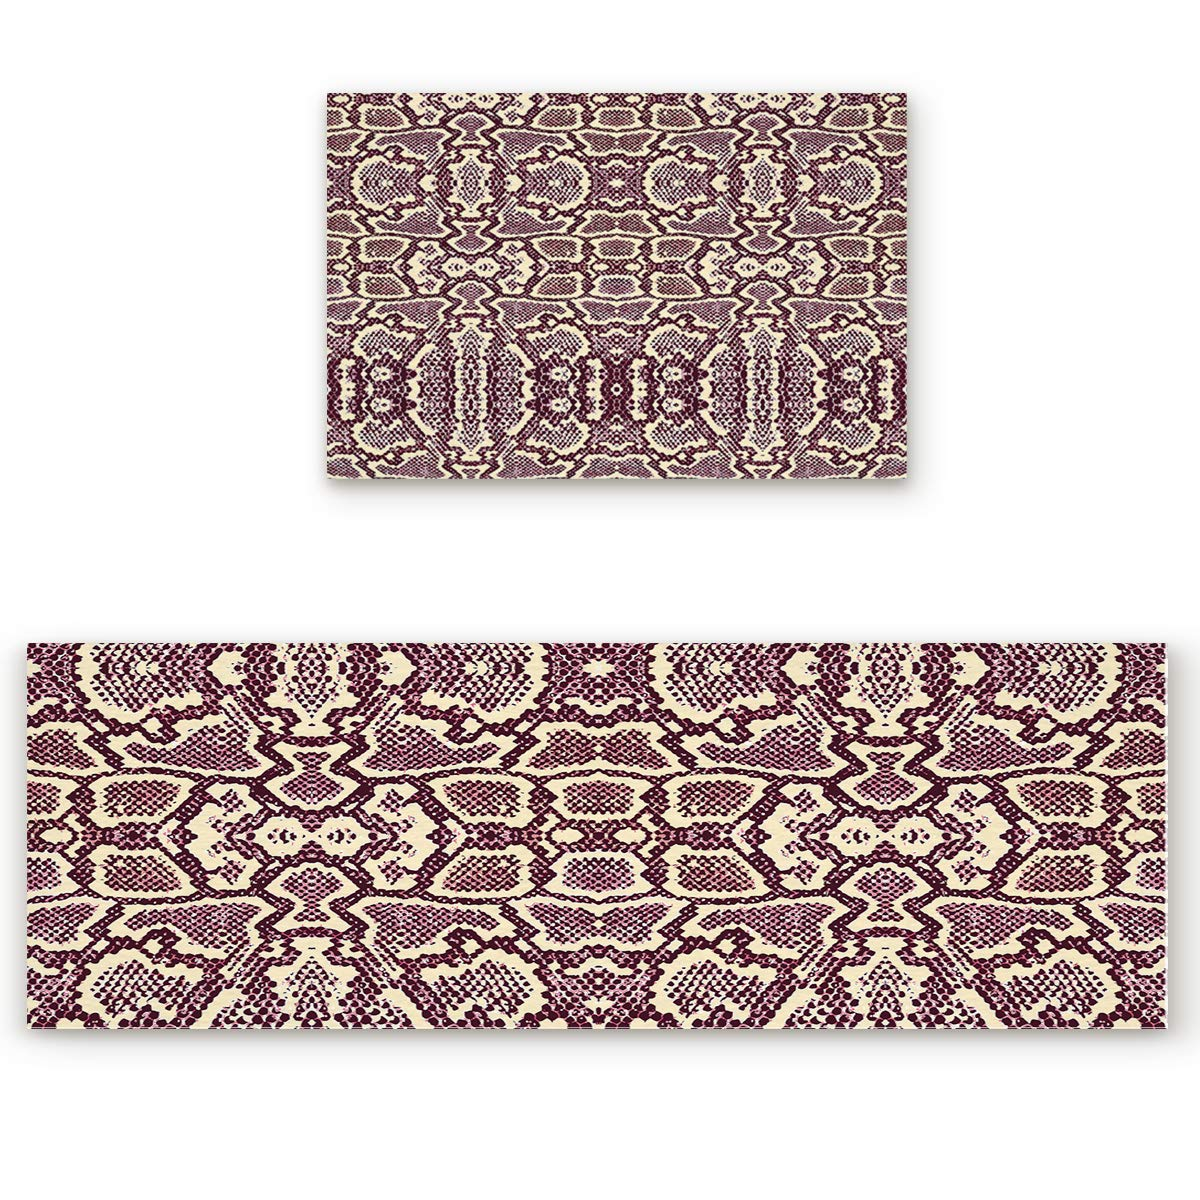 23.6\ SODIKA 2 Pieces Kitchen Rug Set,Non-Skid Slip Washable Doormat Floor Runner Bathroom Area Rug Carpet,Animal Snake Print (23.6x35.4in+23.6x70.9 inches)